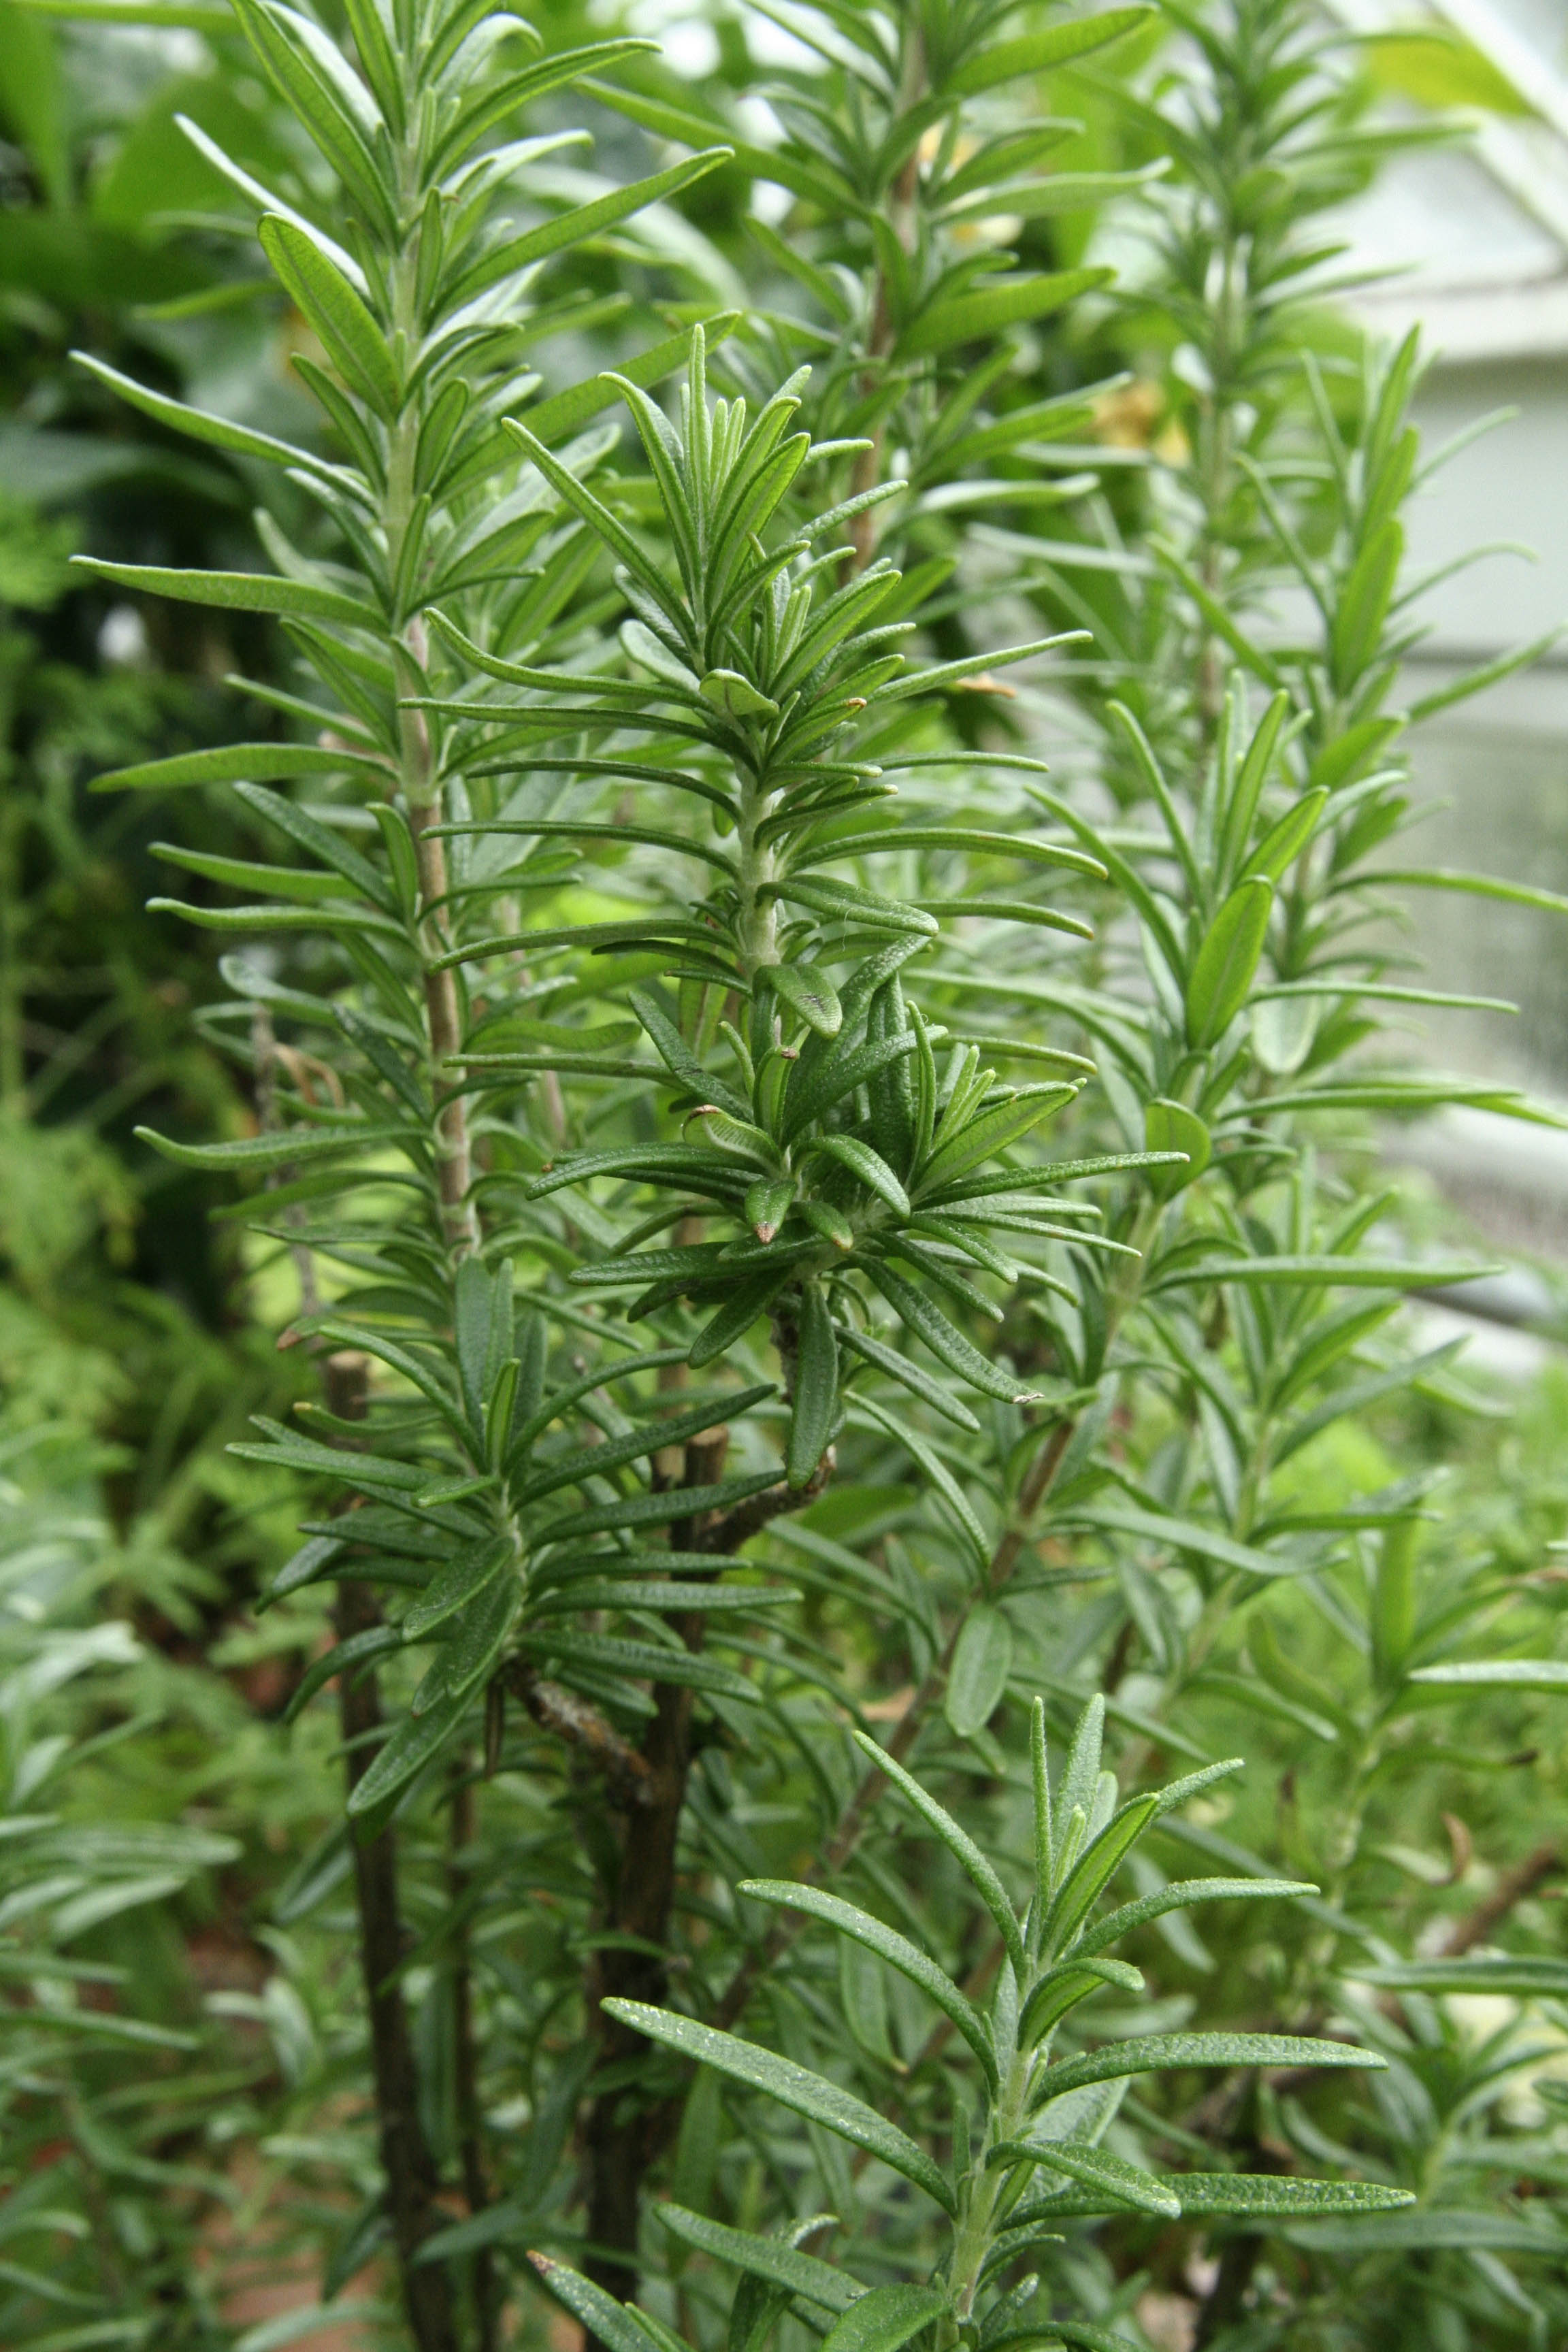 Rosemary plant with woody stems and needle-like leaves